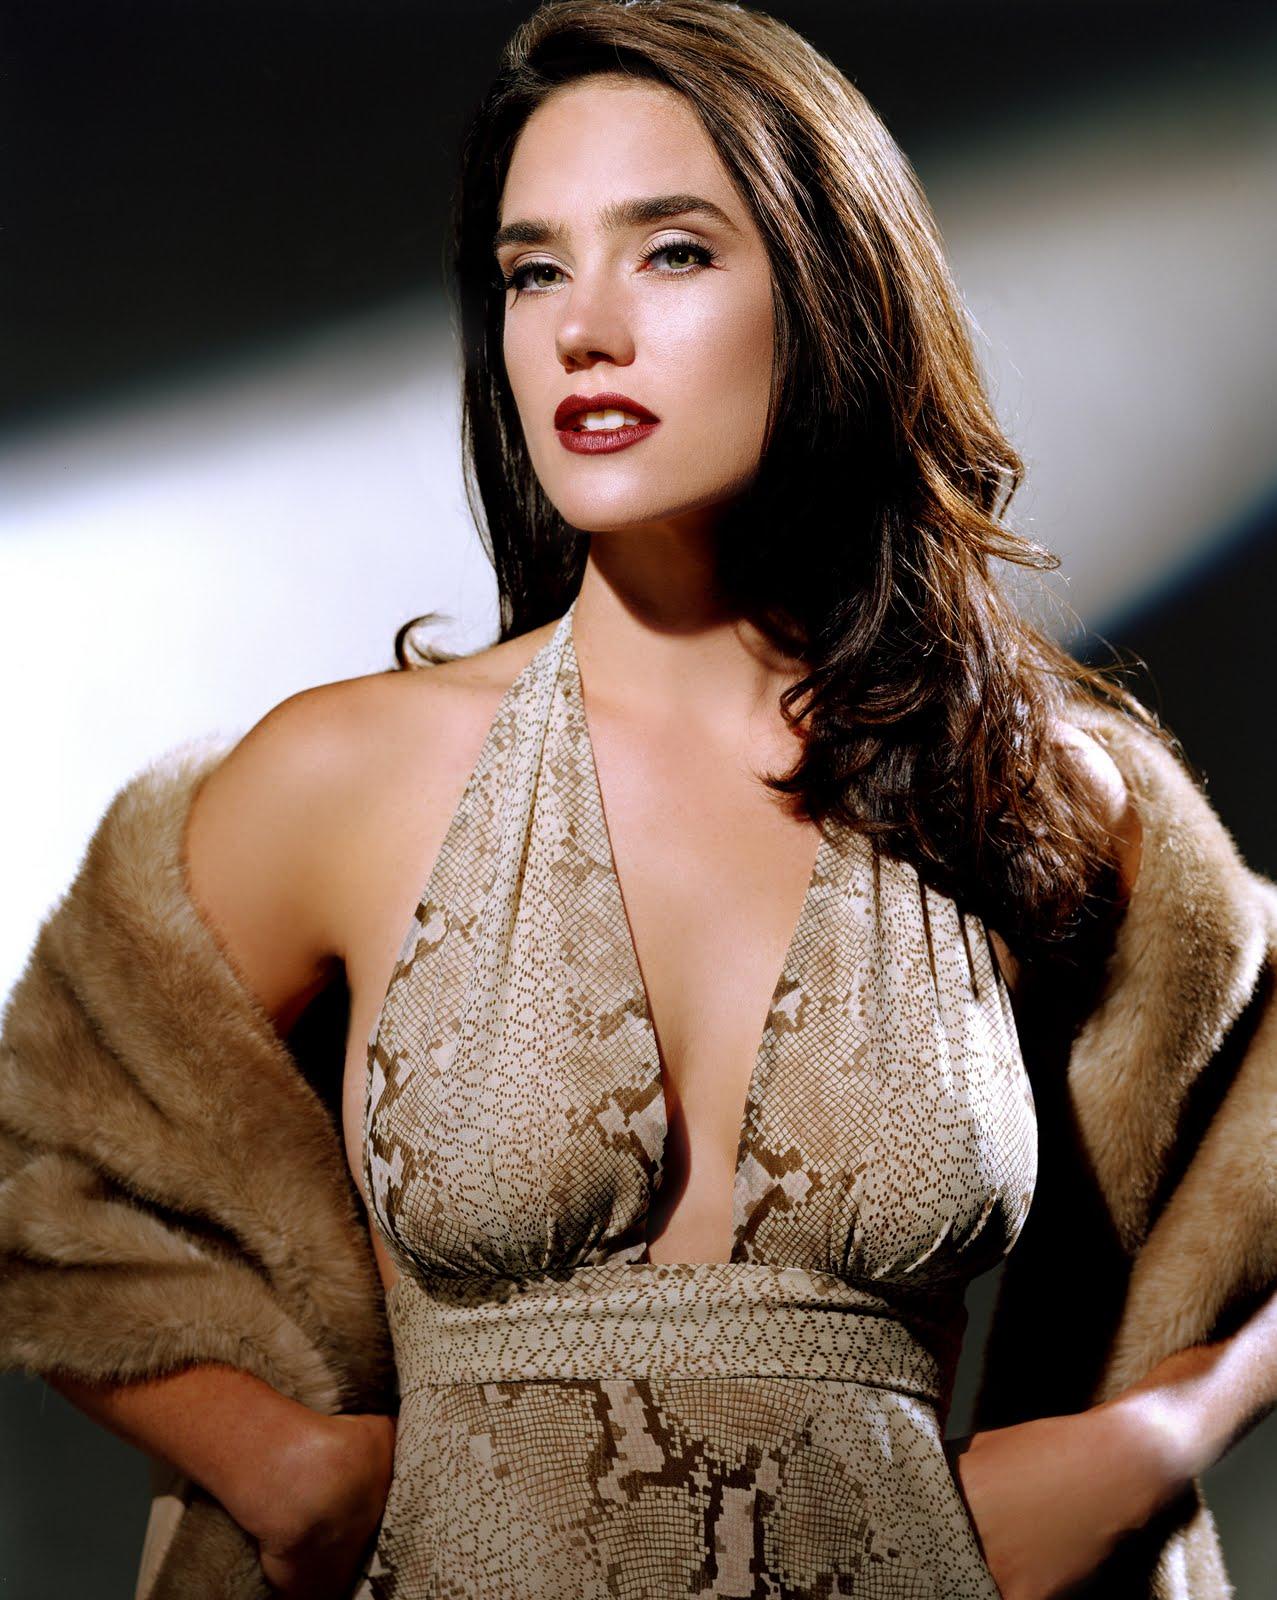 jennifer-connelly-breasts